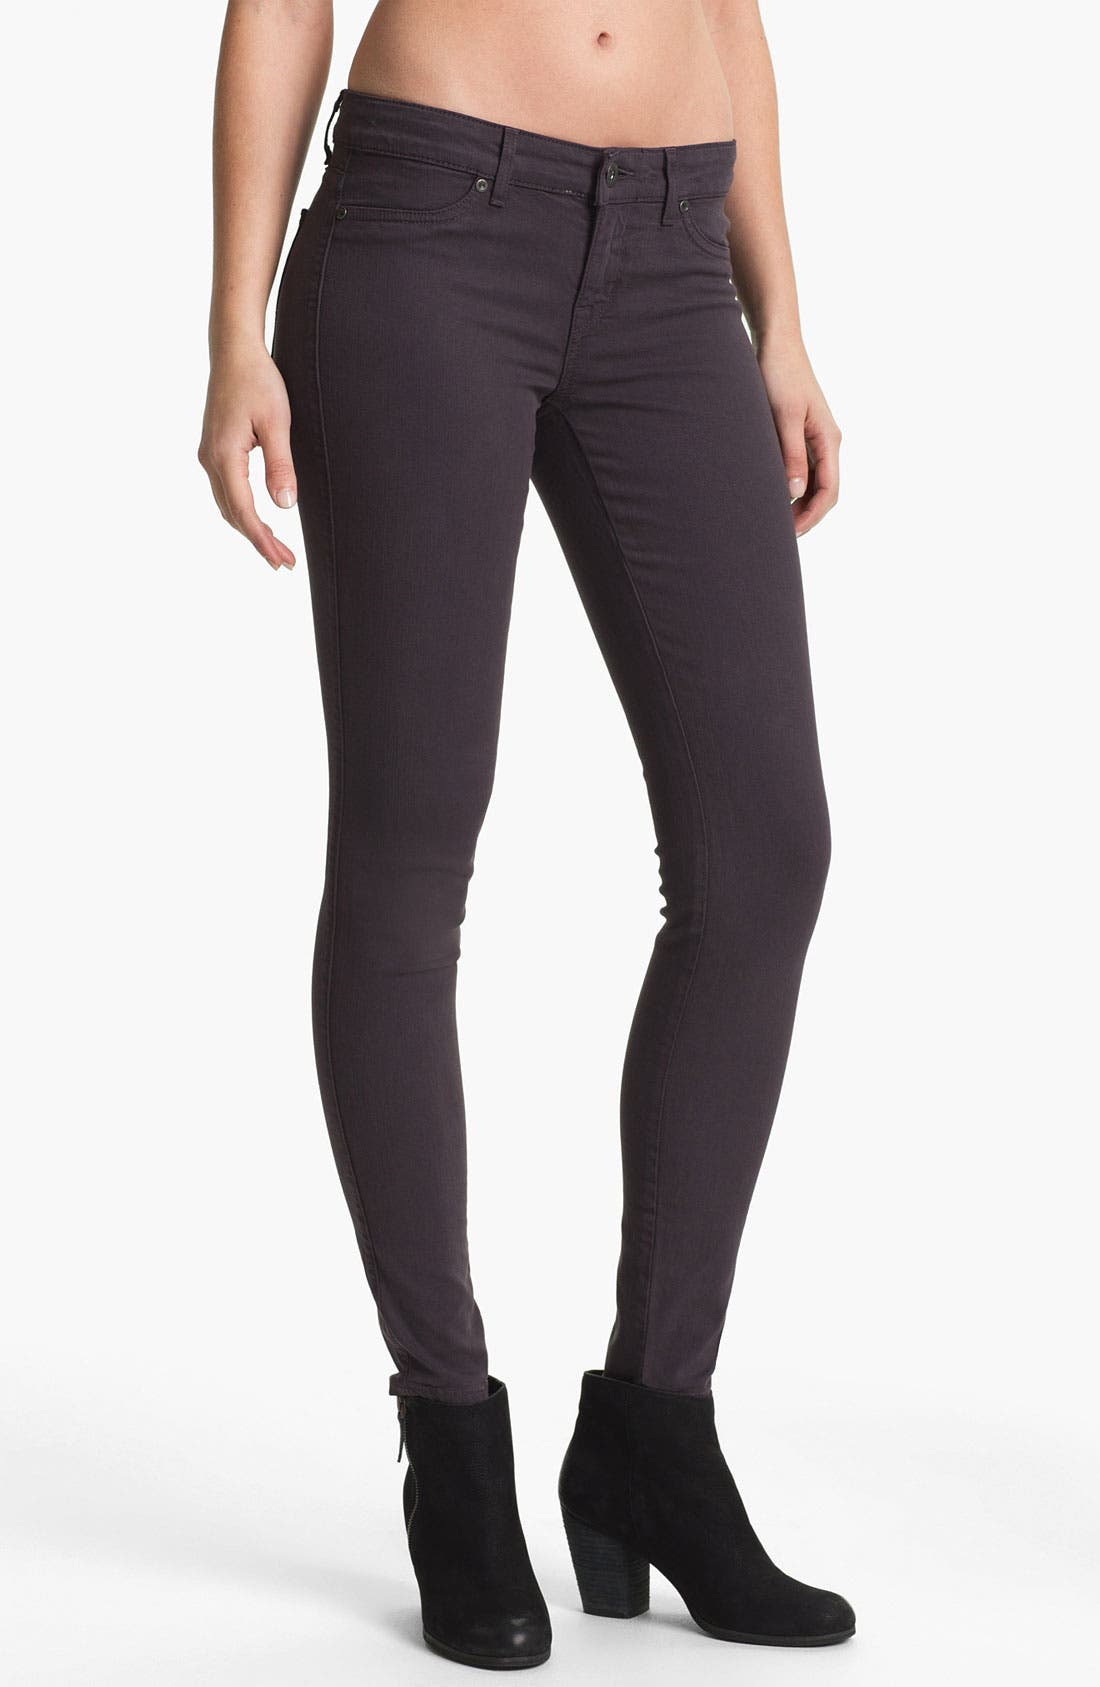 Main Image - Rich & Skinny 'Legacy' Skinny Stretch Jeans (Thumper)